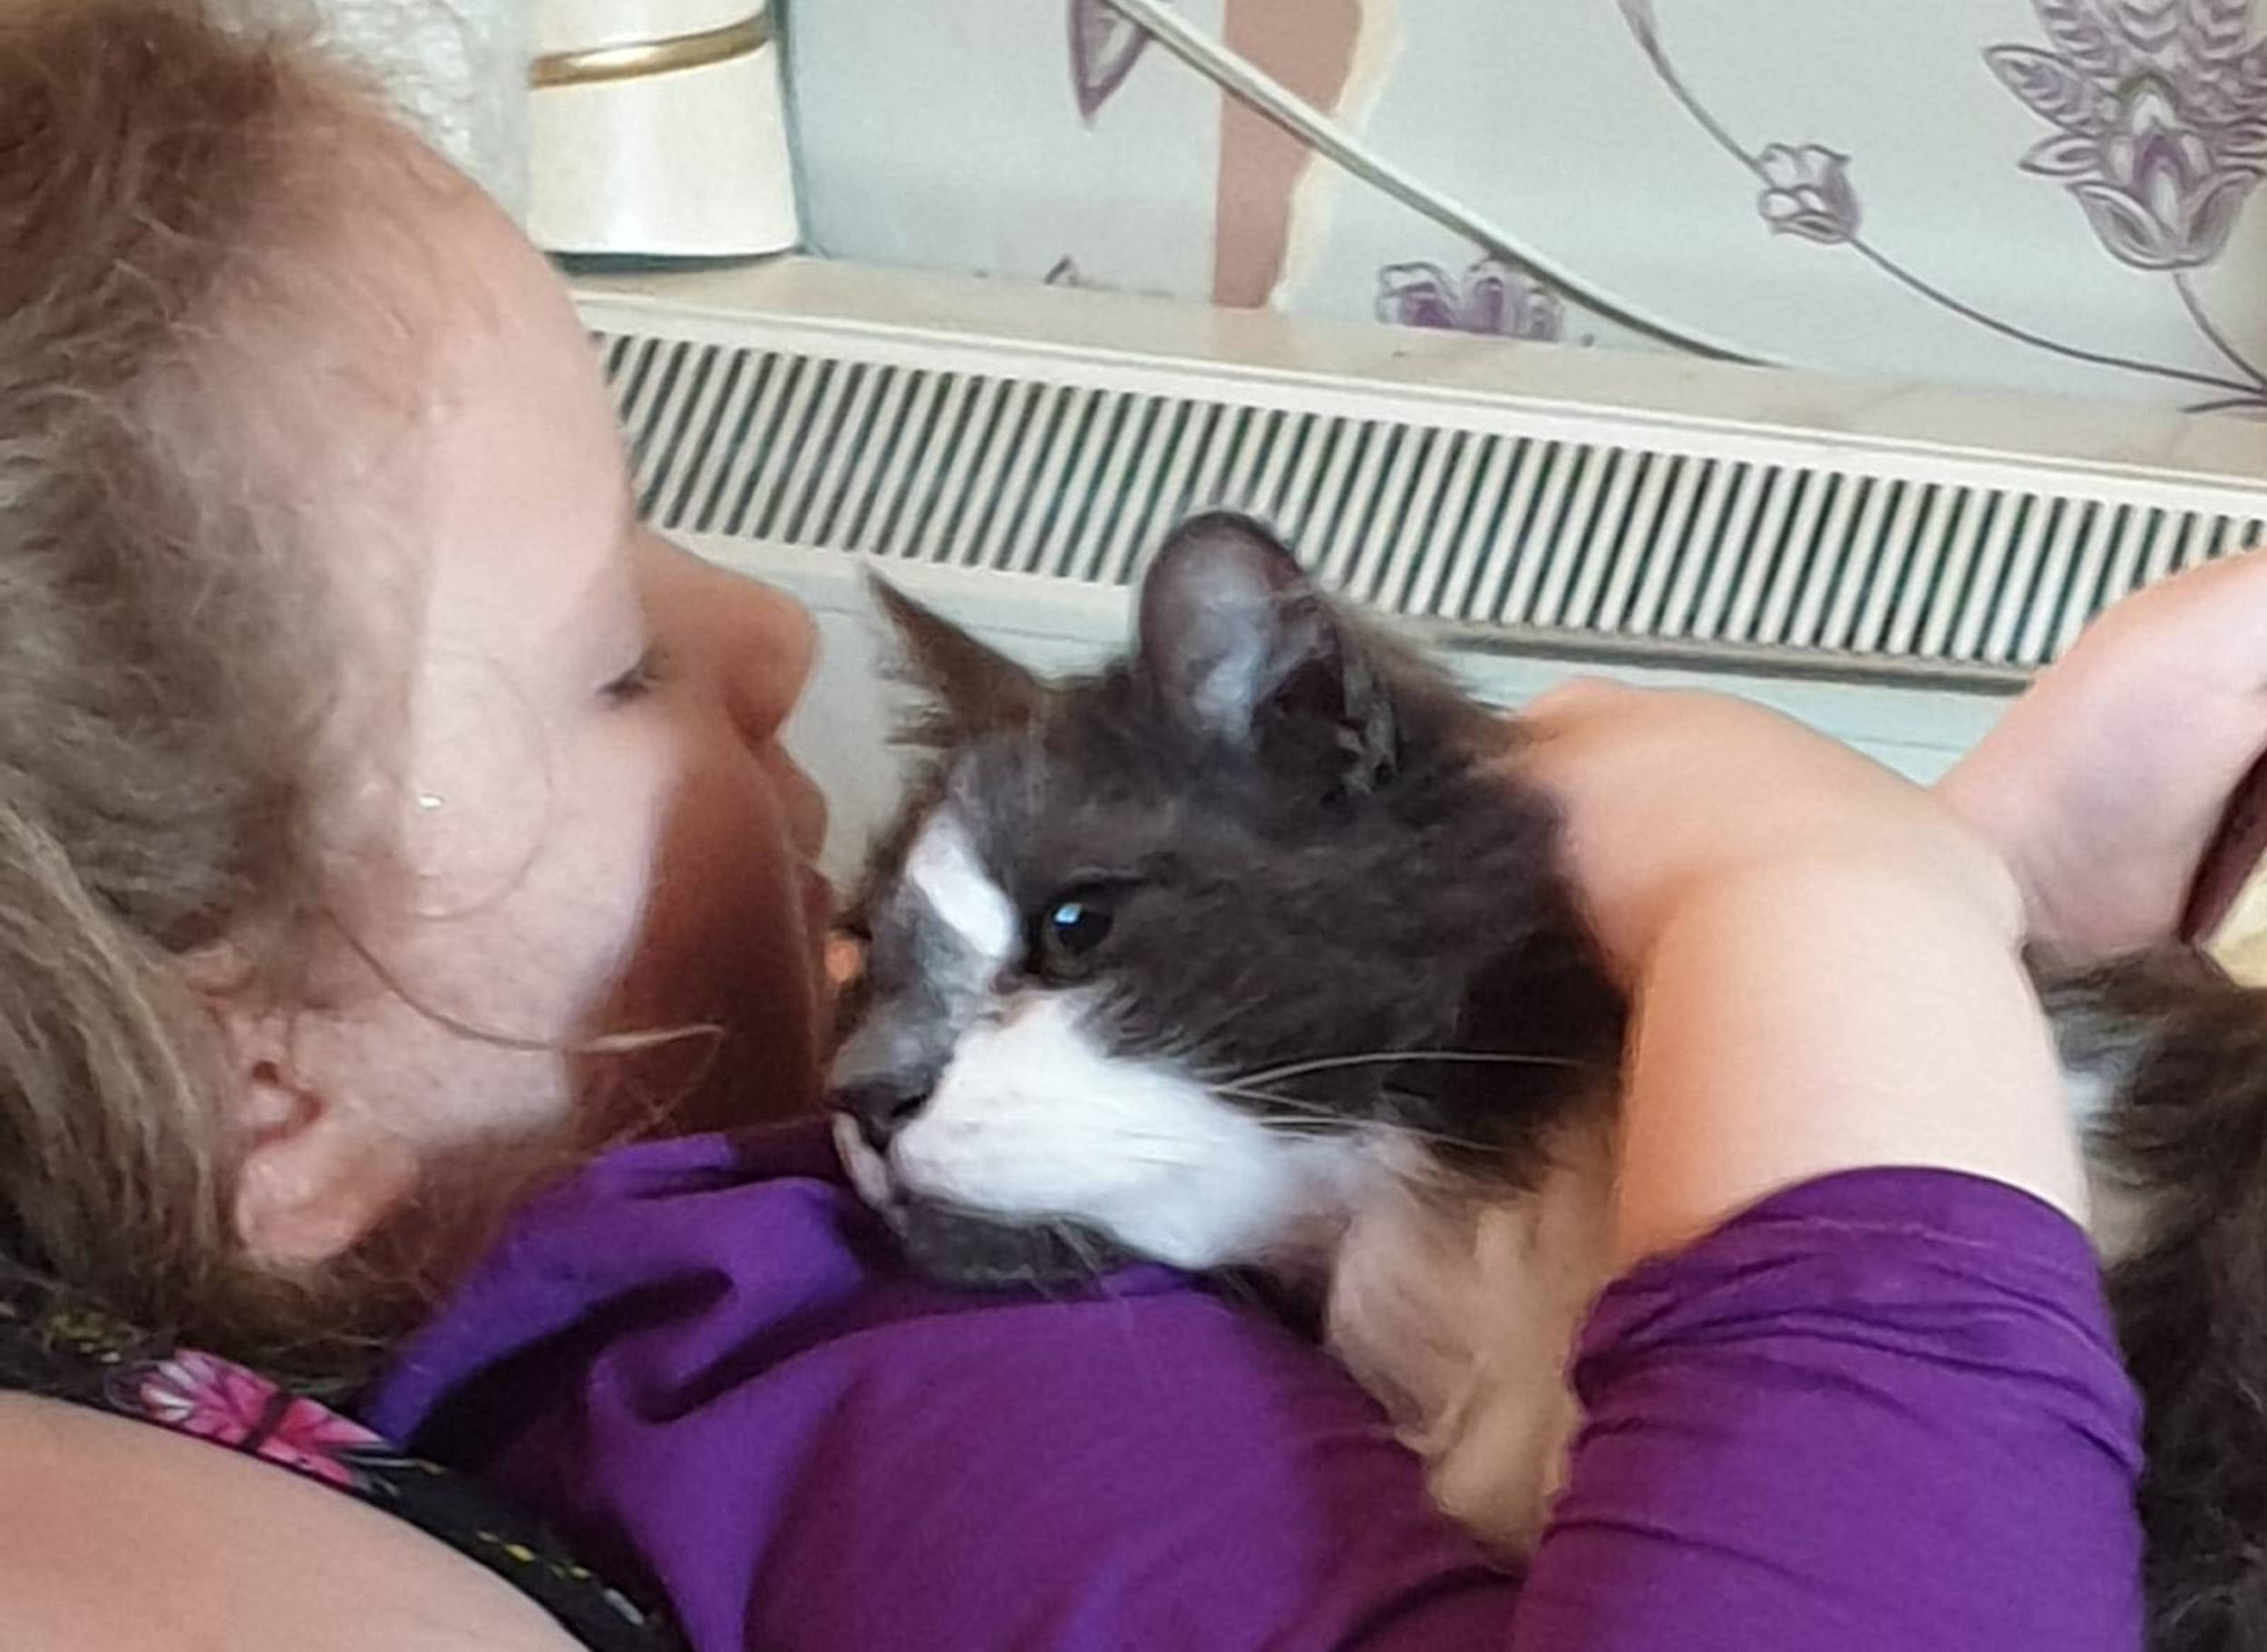 A picture of Naveah Lowe and her now deceased cat Tin Tin -Viral News